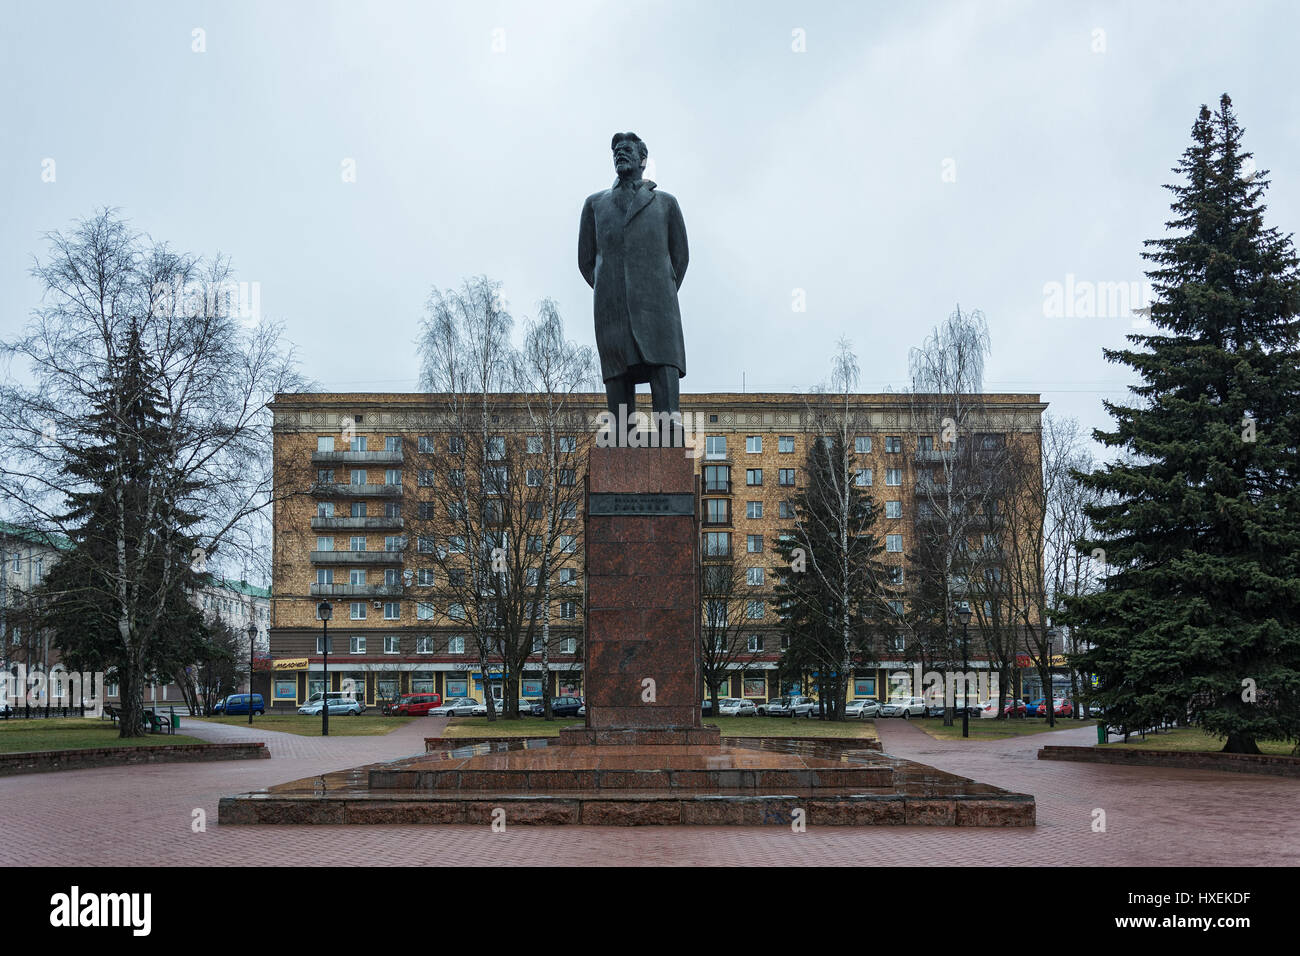 Monument to the Russian revolutionary M.I. Kalinun in the city of Minsk (Belarus) - Stock Image